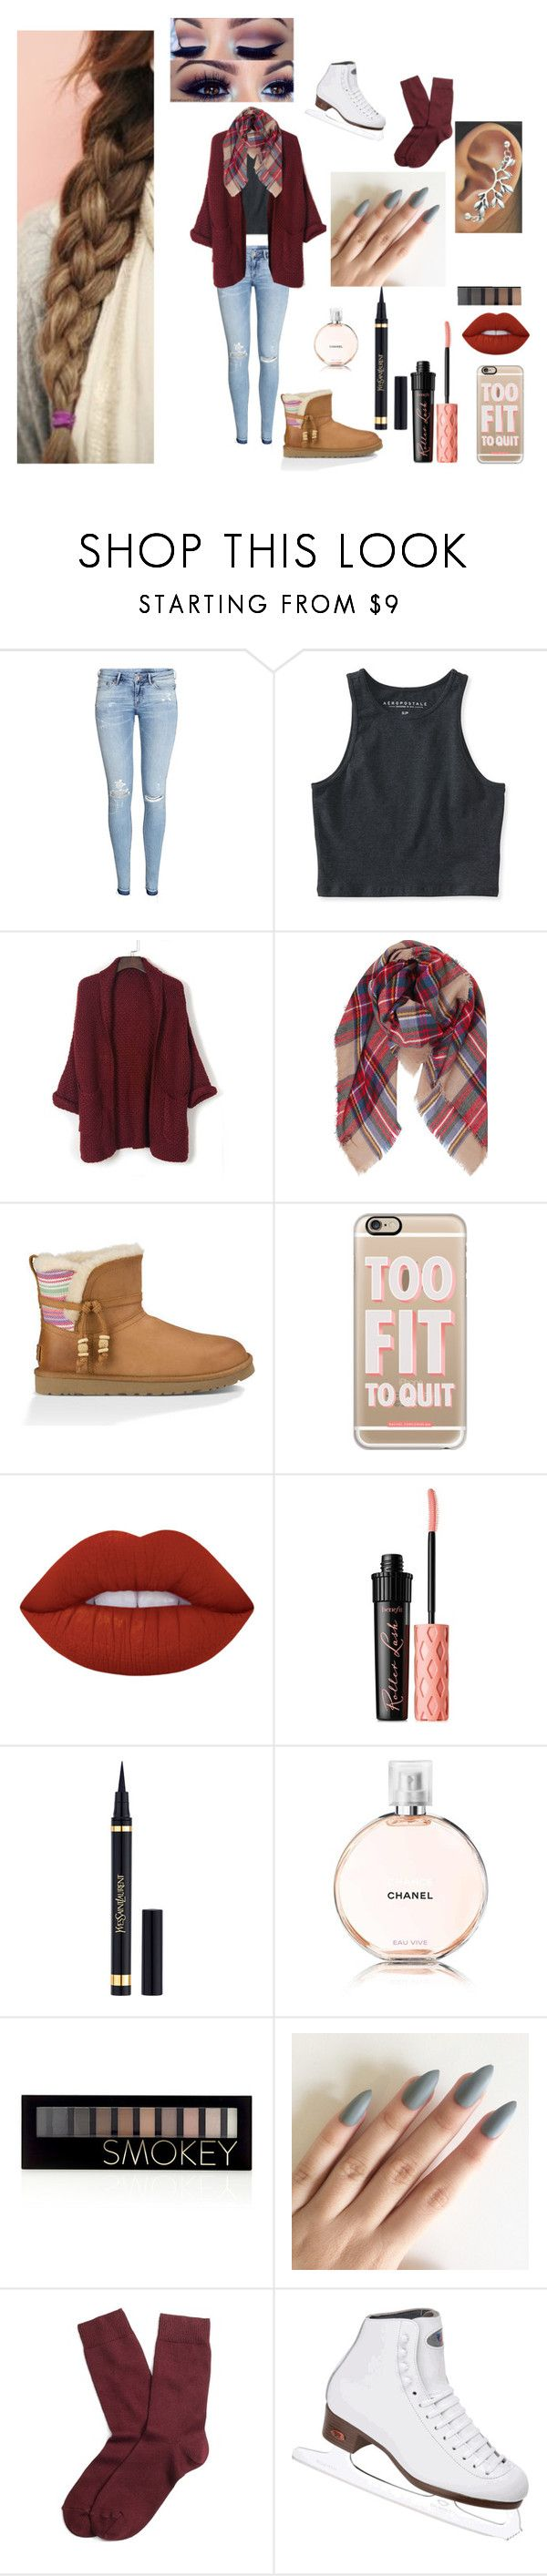 """Ice Skating Date #3"" by madeline-lemon ❤ liked on Polyvore featuring H&M, Aéropostale, WithChic, Humble Chic, UGG Australia, Casetify, Lime Crime, Benefit, Yves Saint Laurent and Chanel"